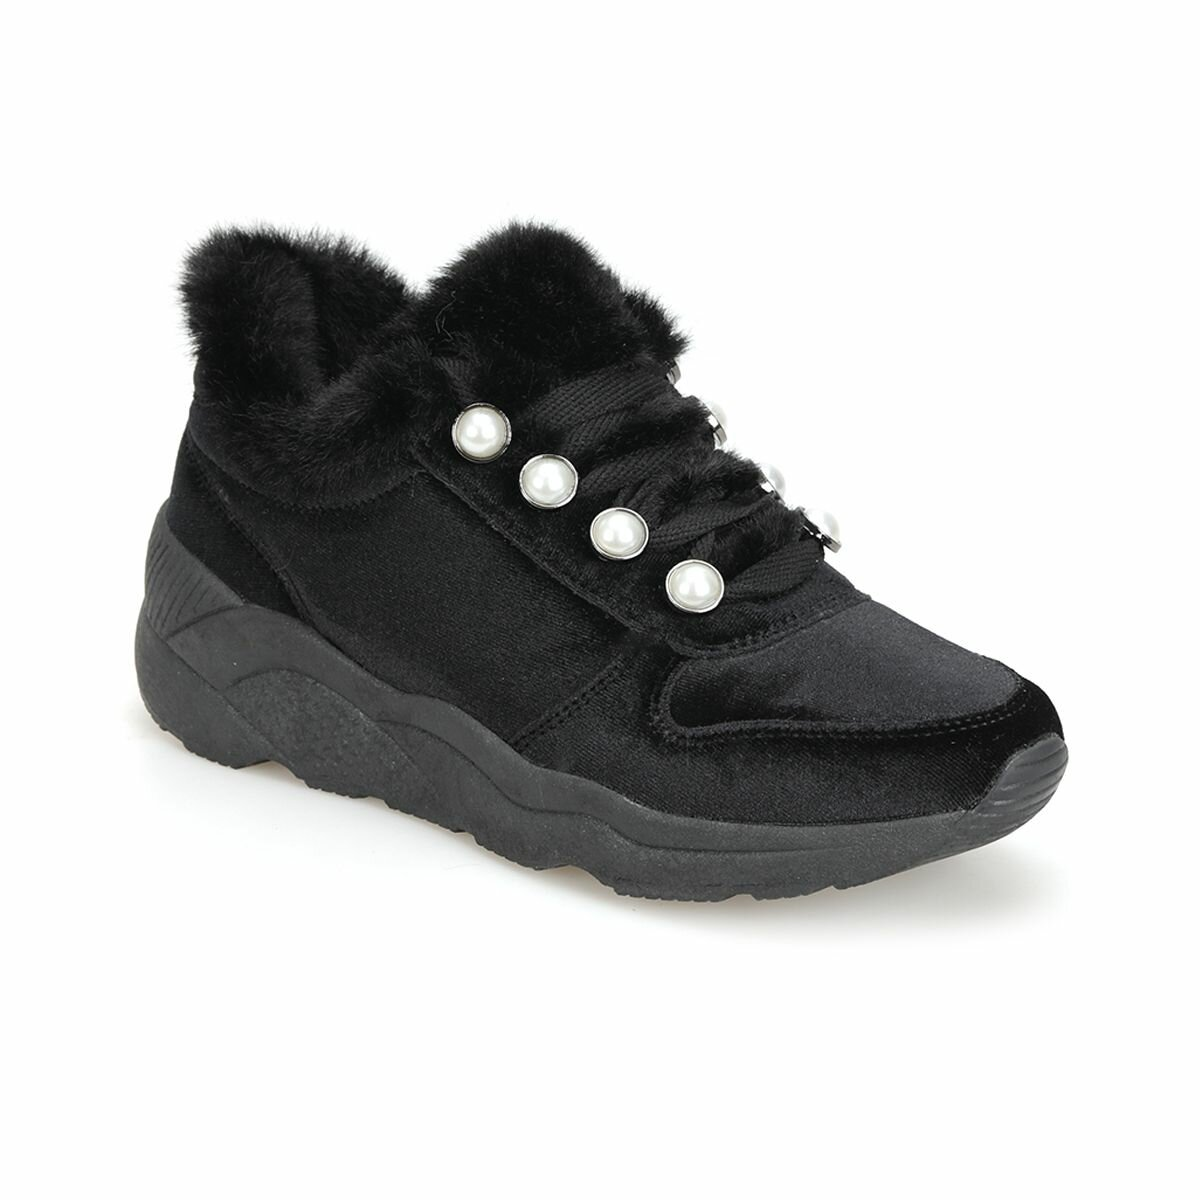 FLO 18K-332 Black Women 'S Sneaker Shoes BUTIGO